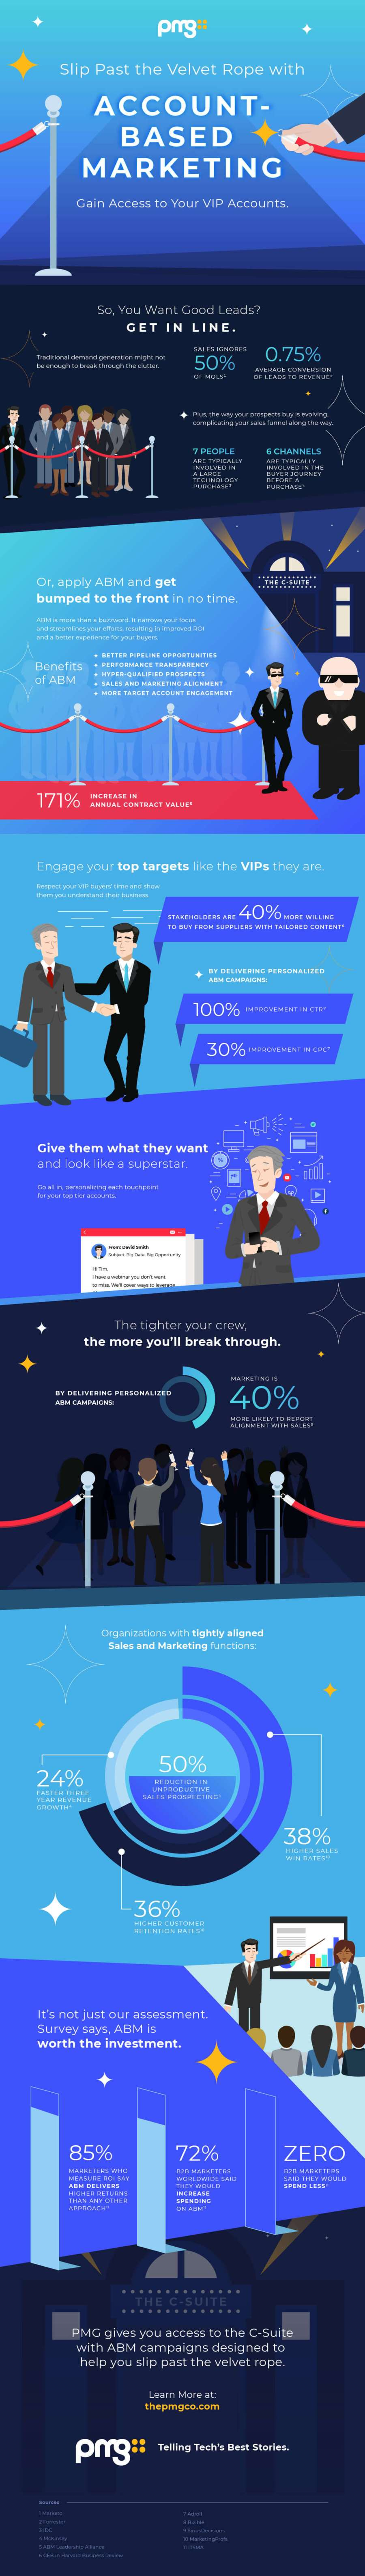 Account-Based Marketing Infographic